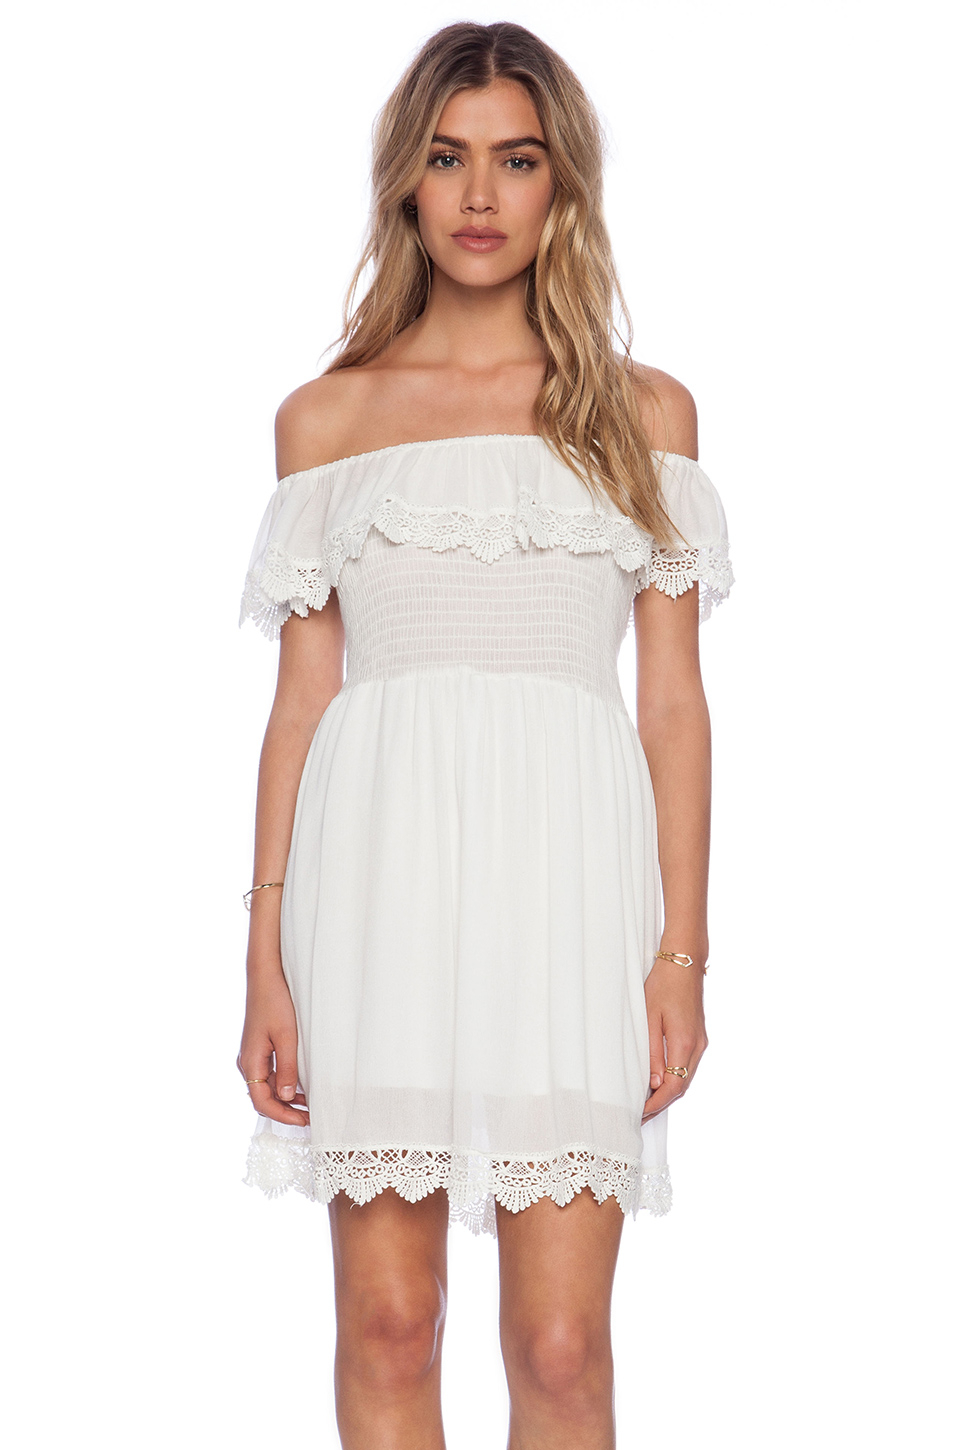 Floral lace adorns this piece with a flutter hem Read More This white mini dress gives a cheeky fit perfectly made to layer or wear alone for a romantic feel. Floral lace adorns this piece with a flutter hem and halter fit for the perfect support.